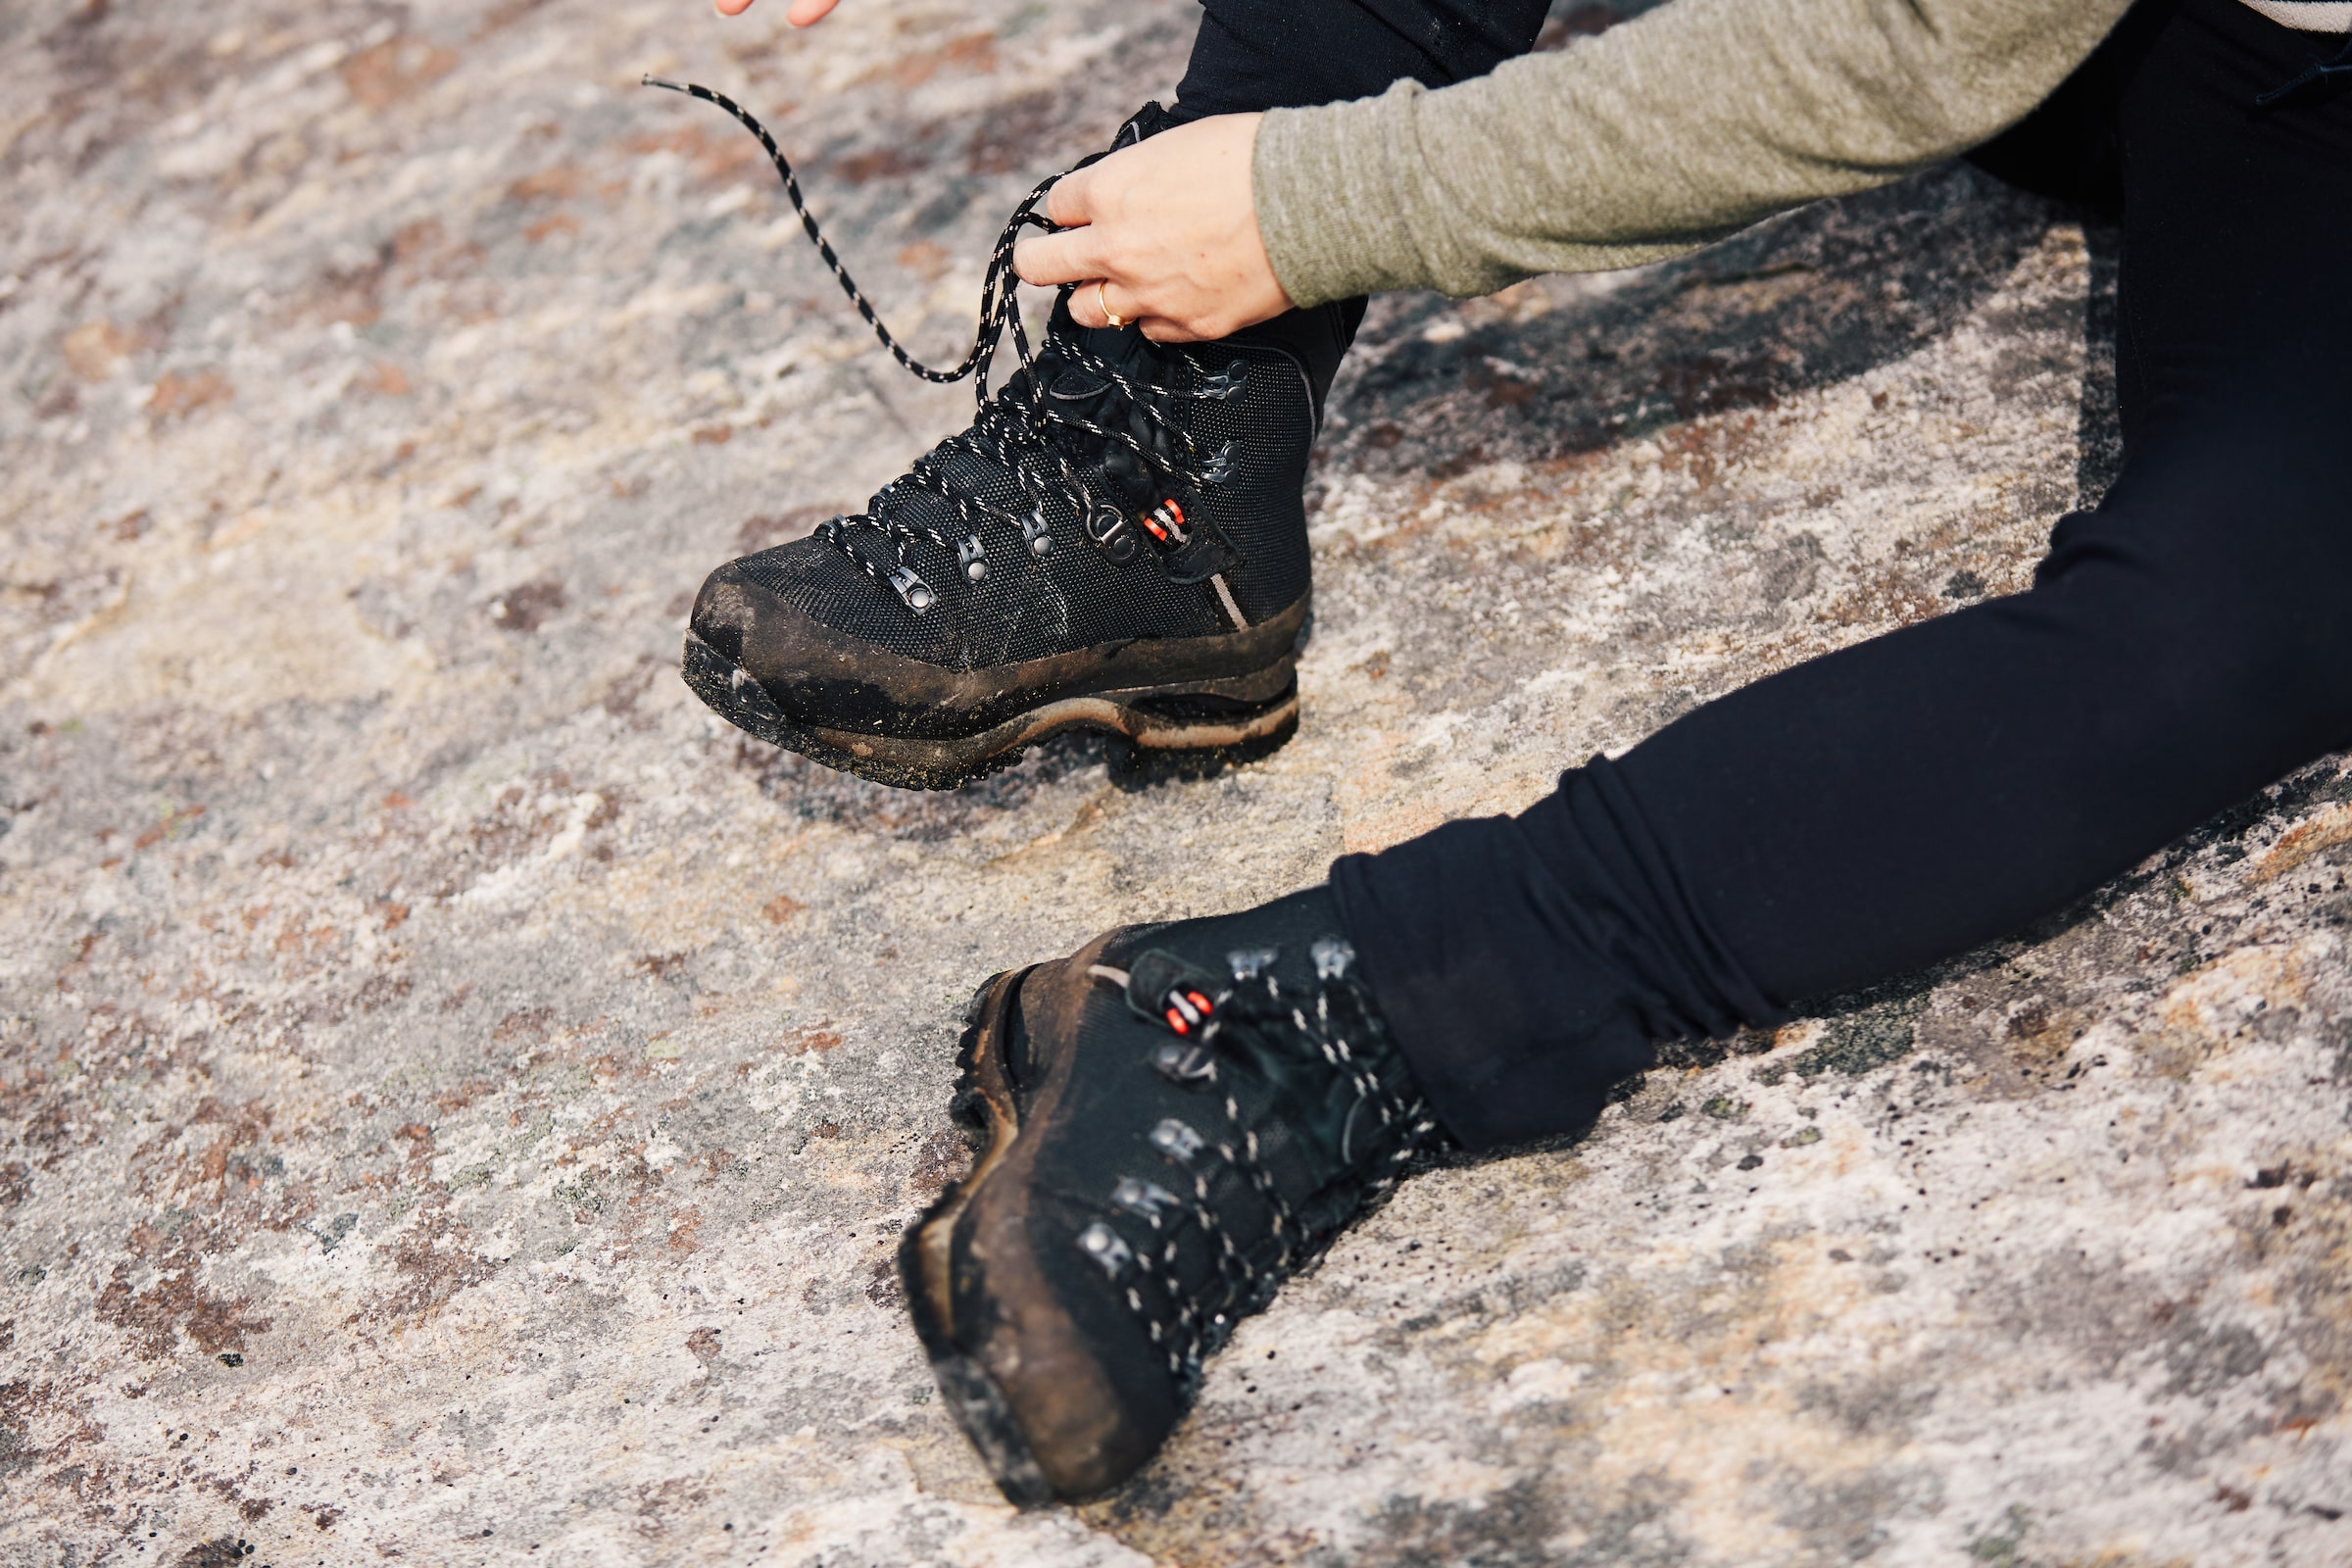 Hiking boots. Photo by Filip Gielda